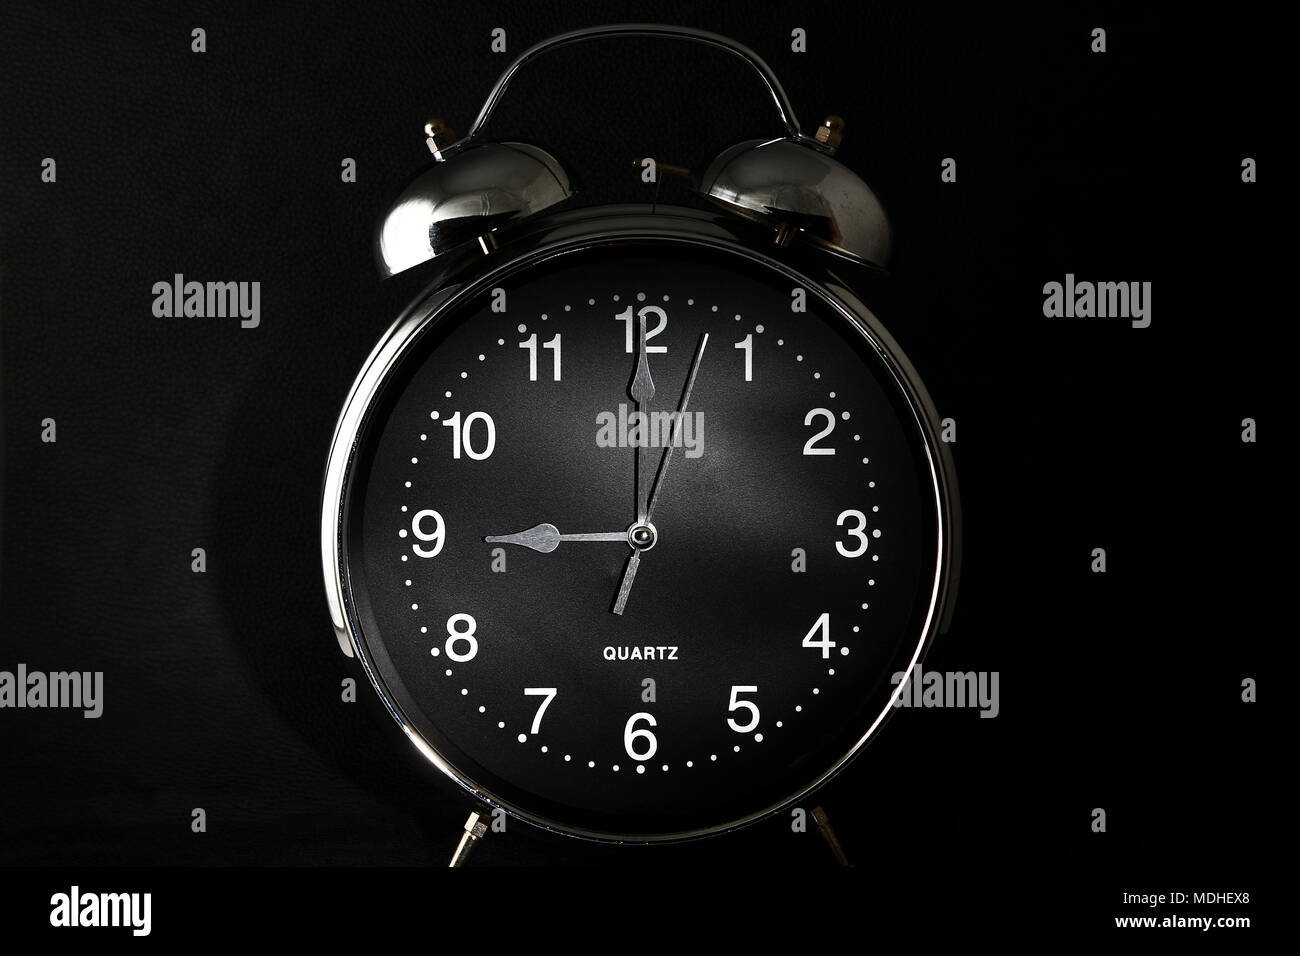 Old retro alarm clock with the hands set to 9:00 am or pm - Stock Image